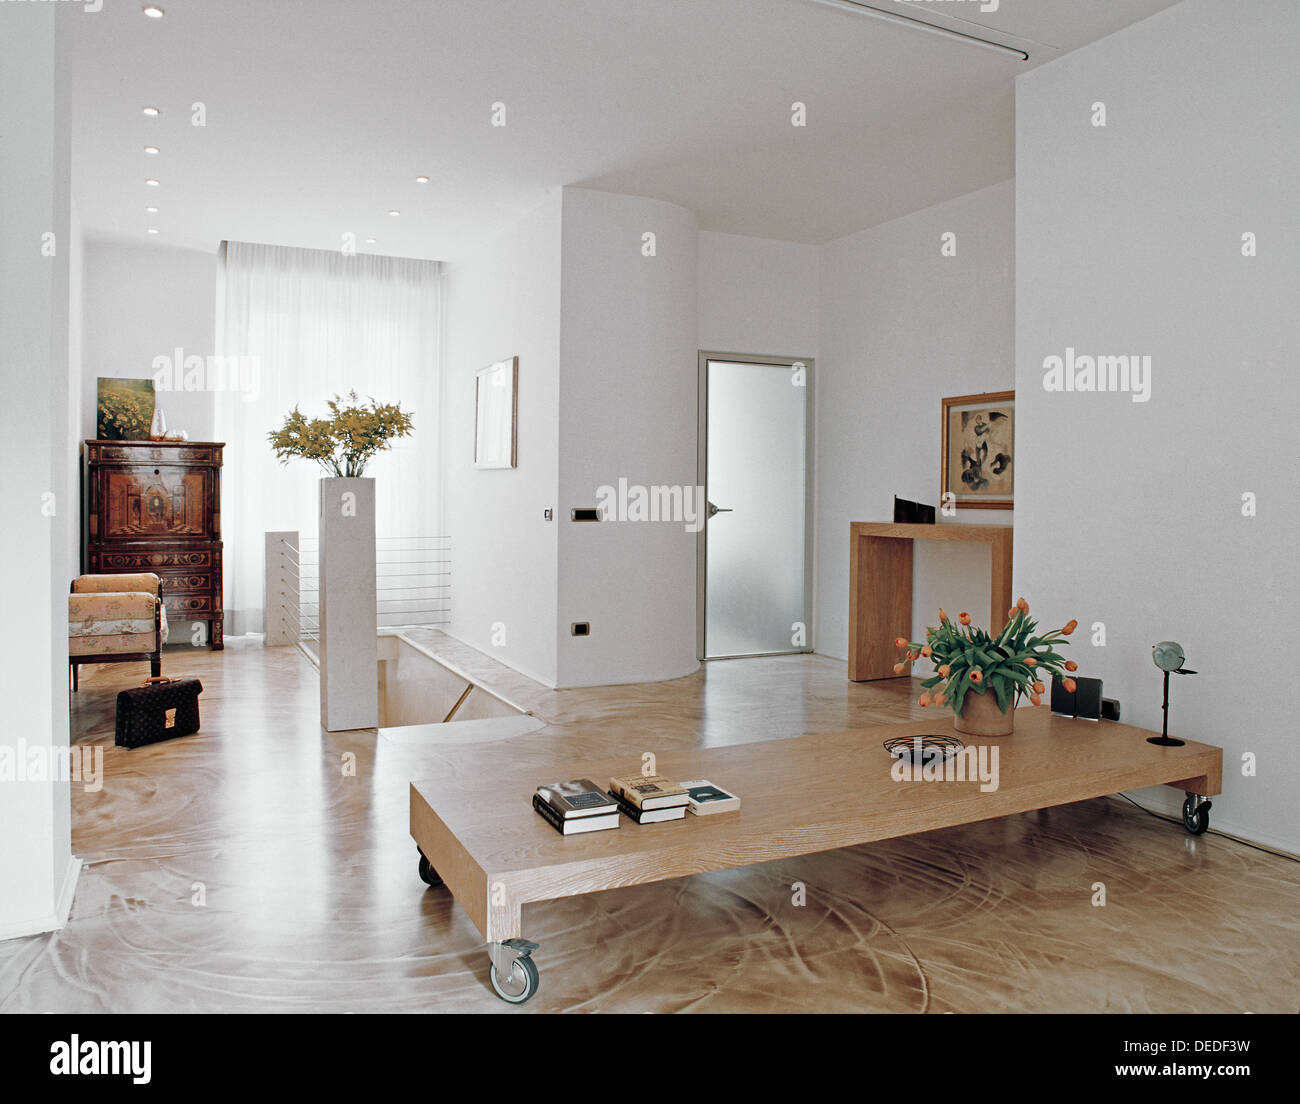 Df Mobili Modern Living Room With Old Furniture And Resin Floor Stock Photo